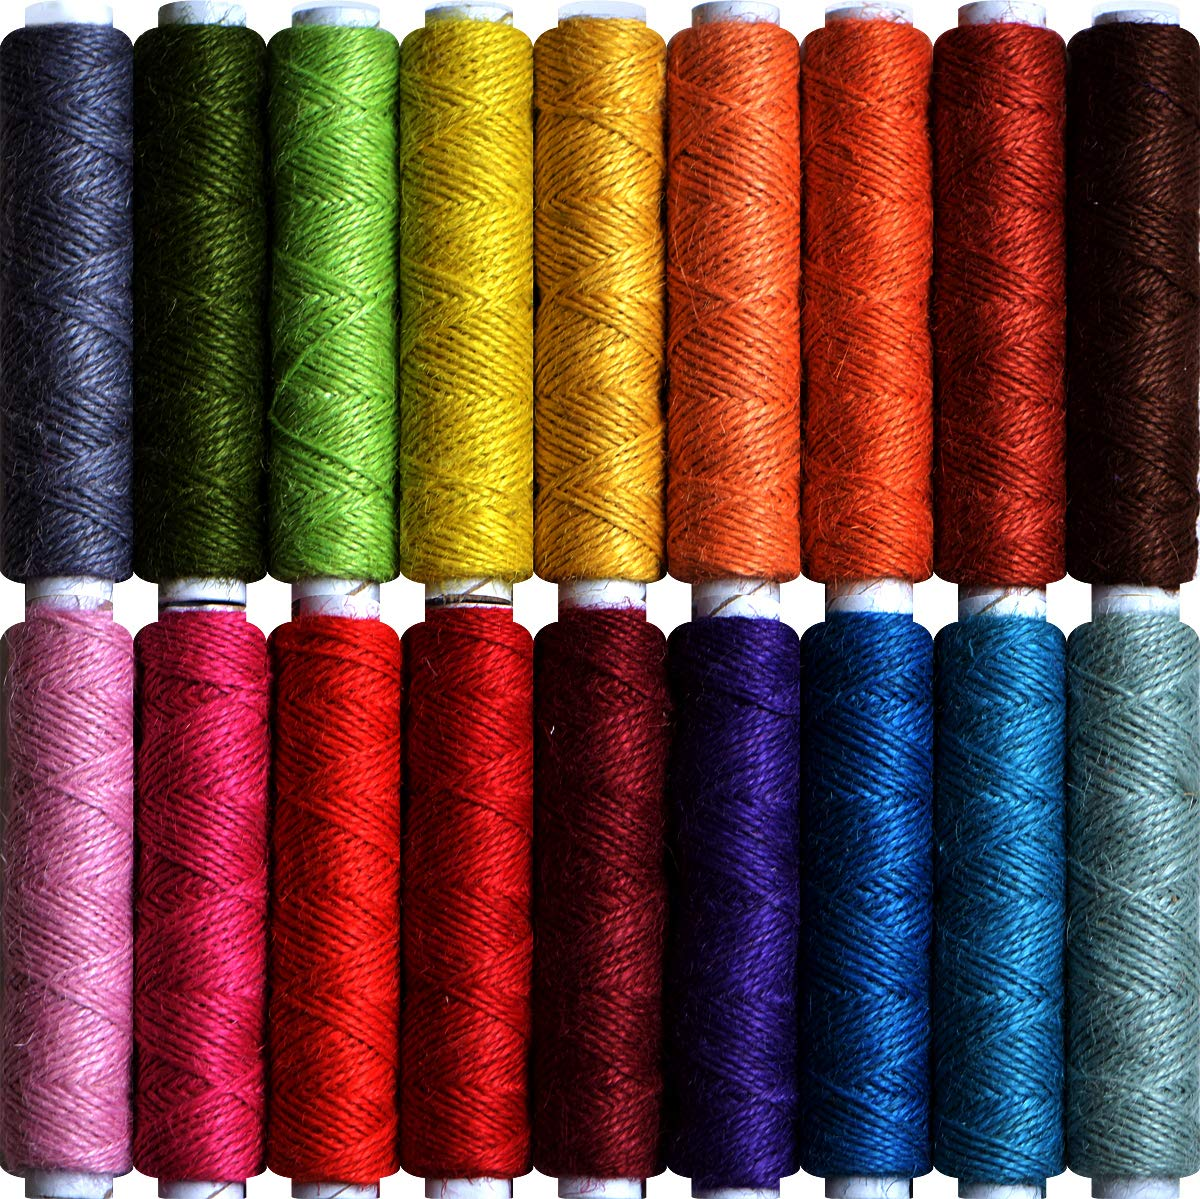 Jute Twine- Thick Jute String Rope-Natural Garden Twine-2mm Jute Twine String Hemp Rolls 18 Colors,1605 Feet (535 Yards) Each for Gardening, Bundling, Gifts, Decoration, DIY Crafts by LE PAON